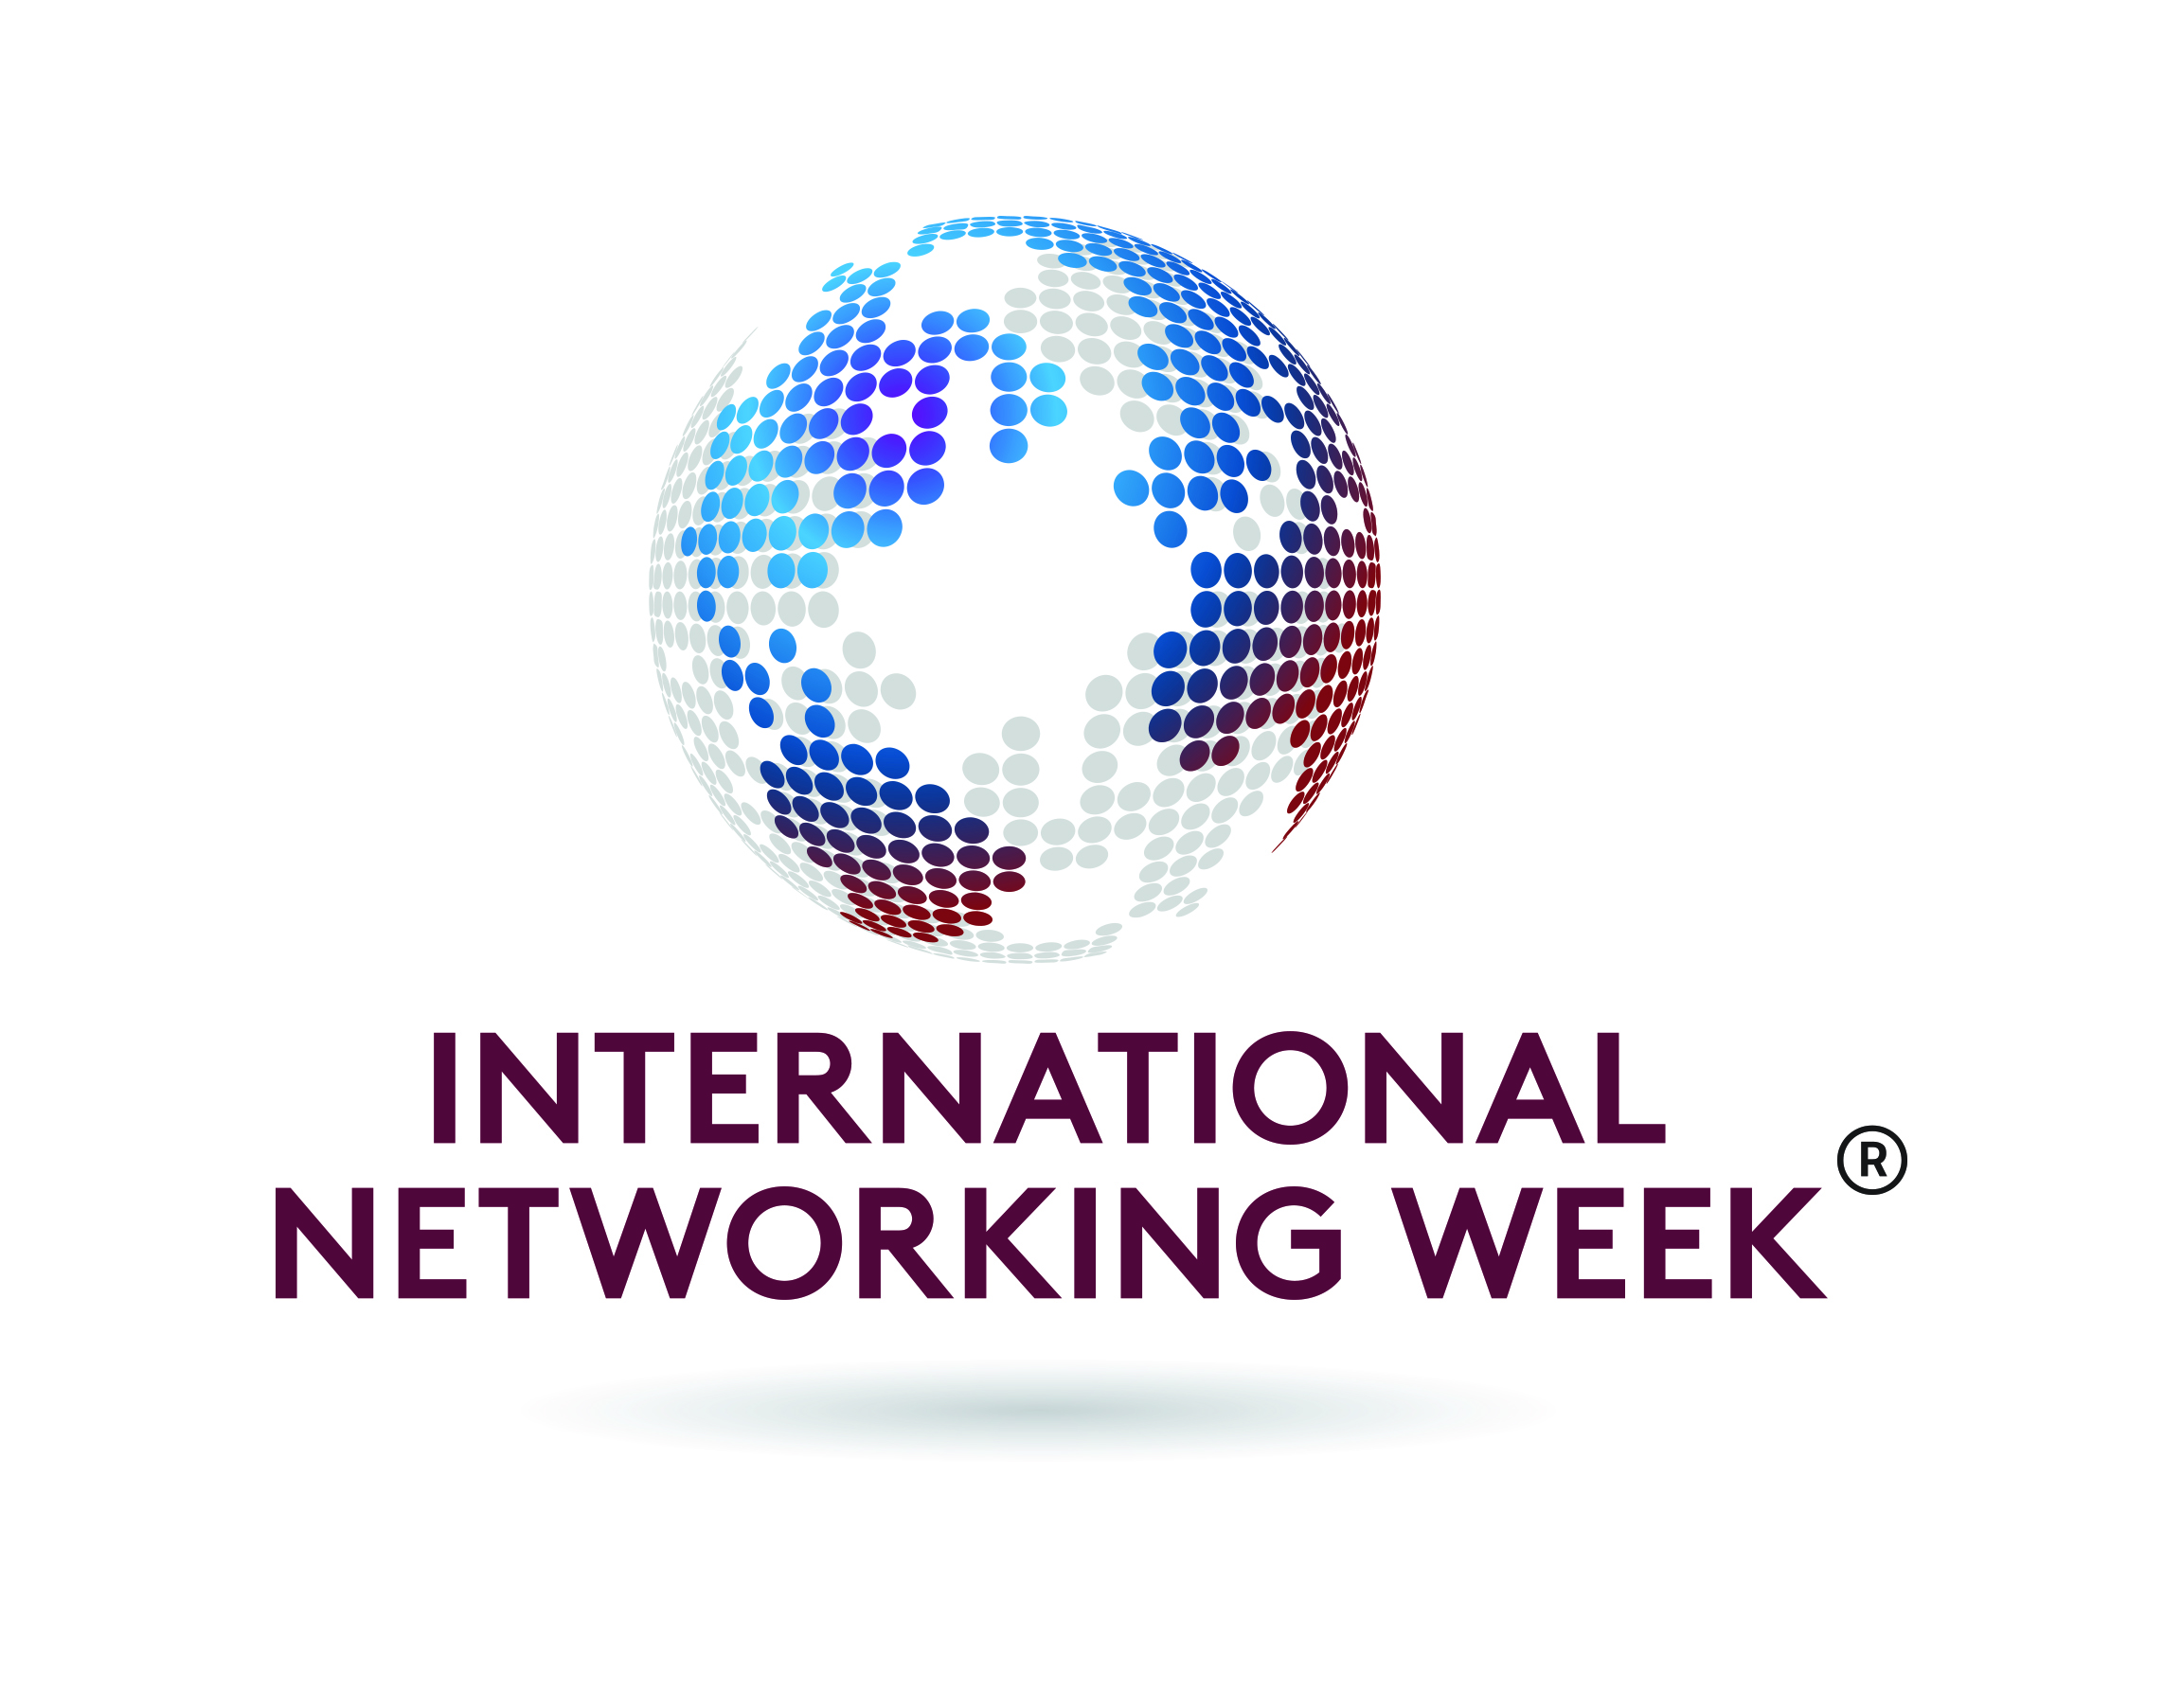 International Networking Week 2017